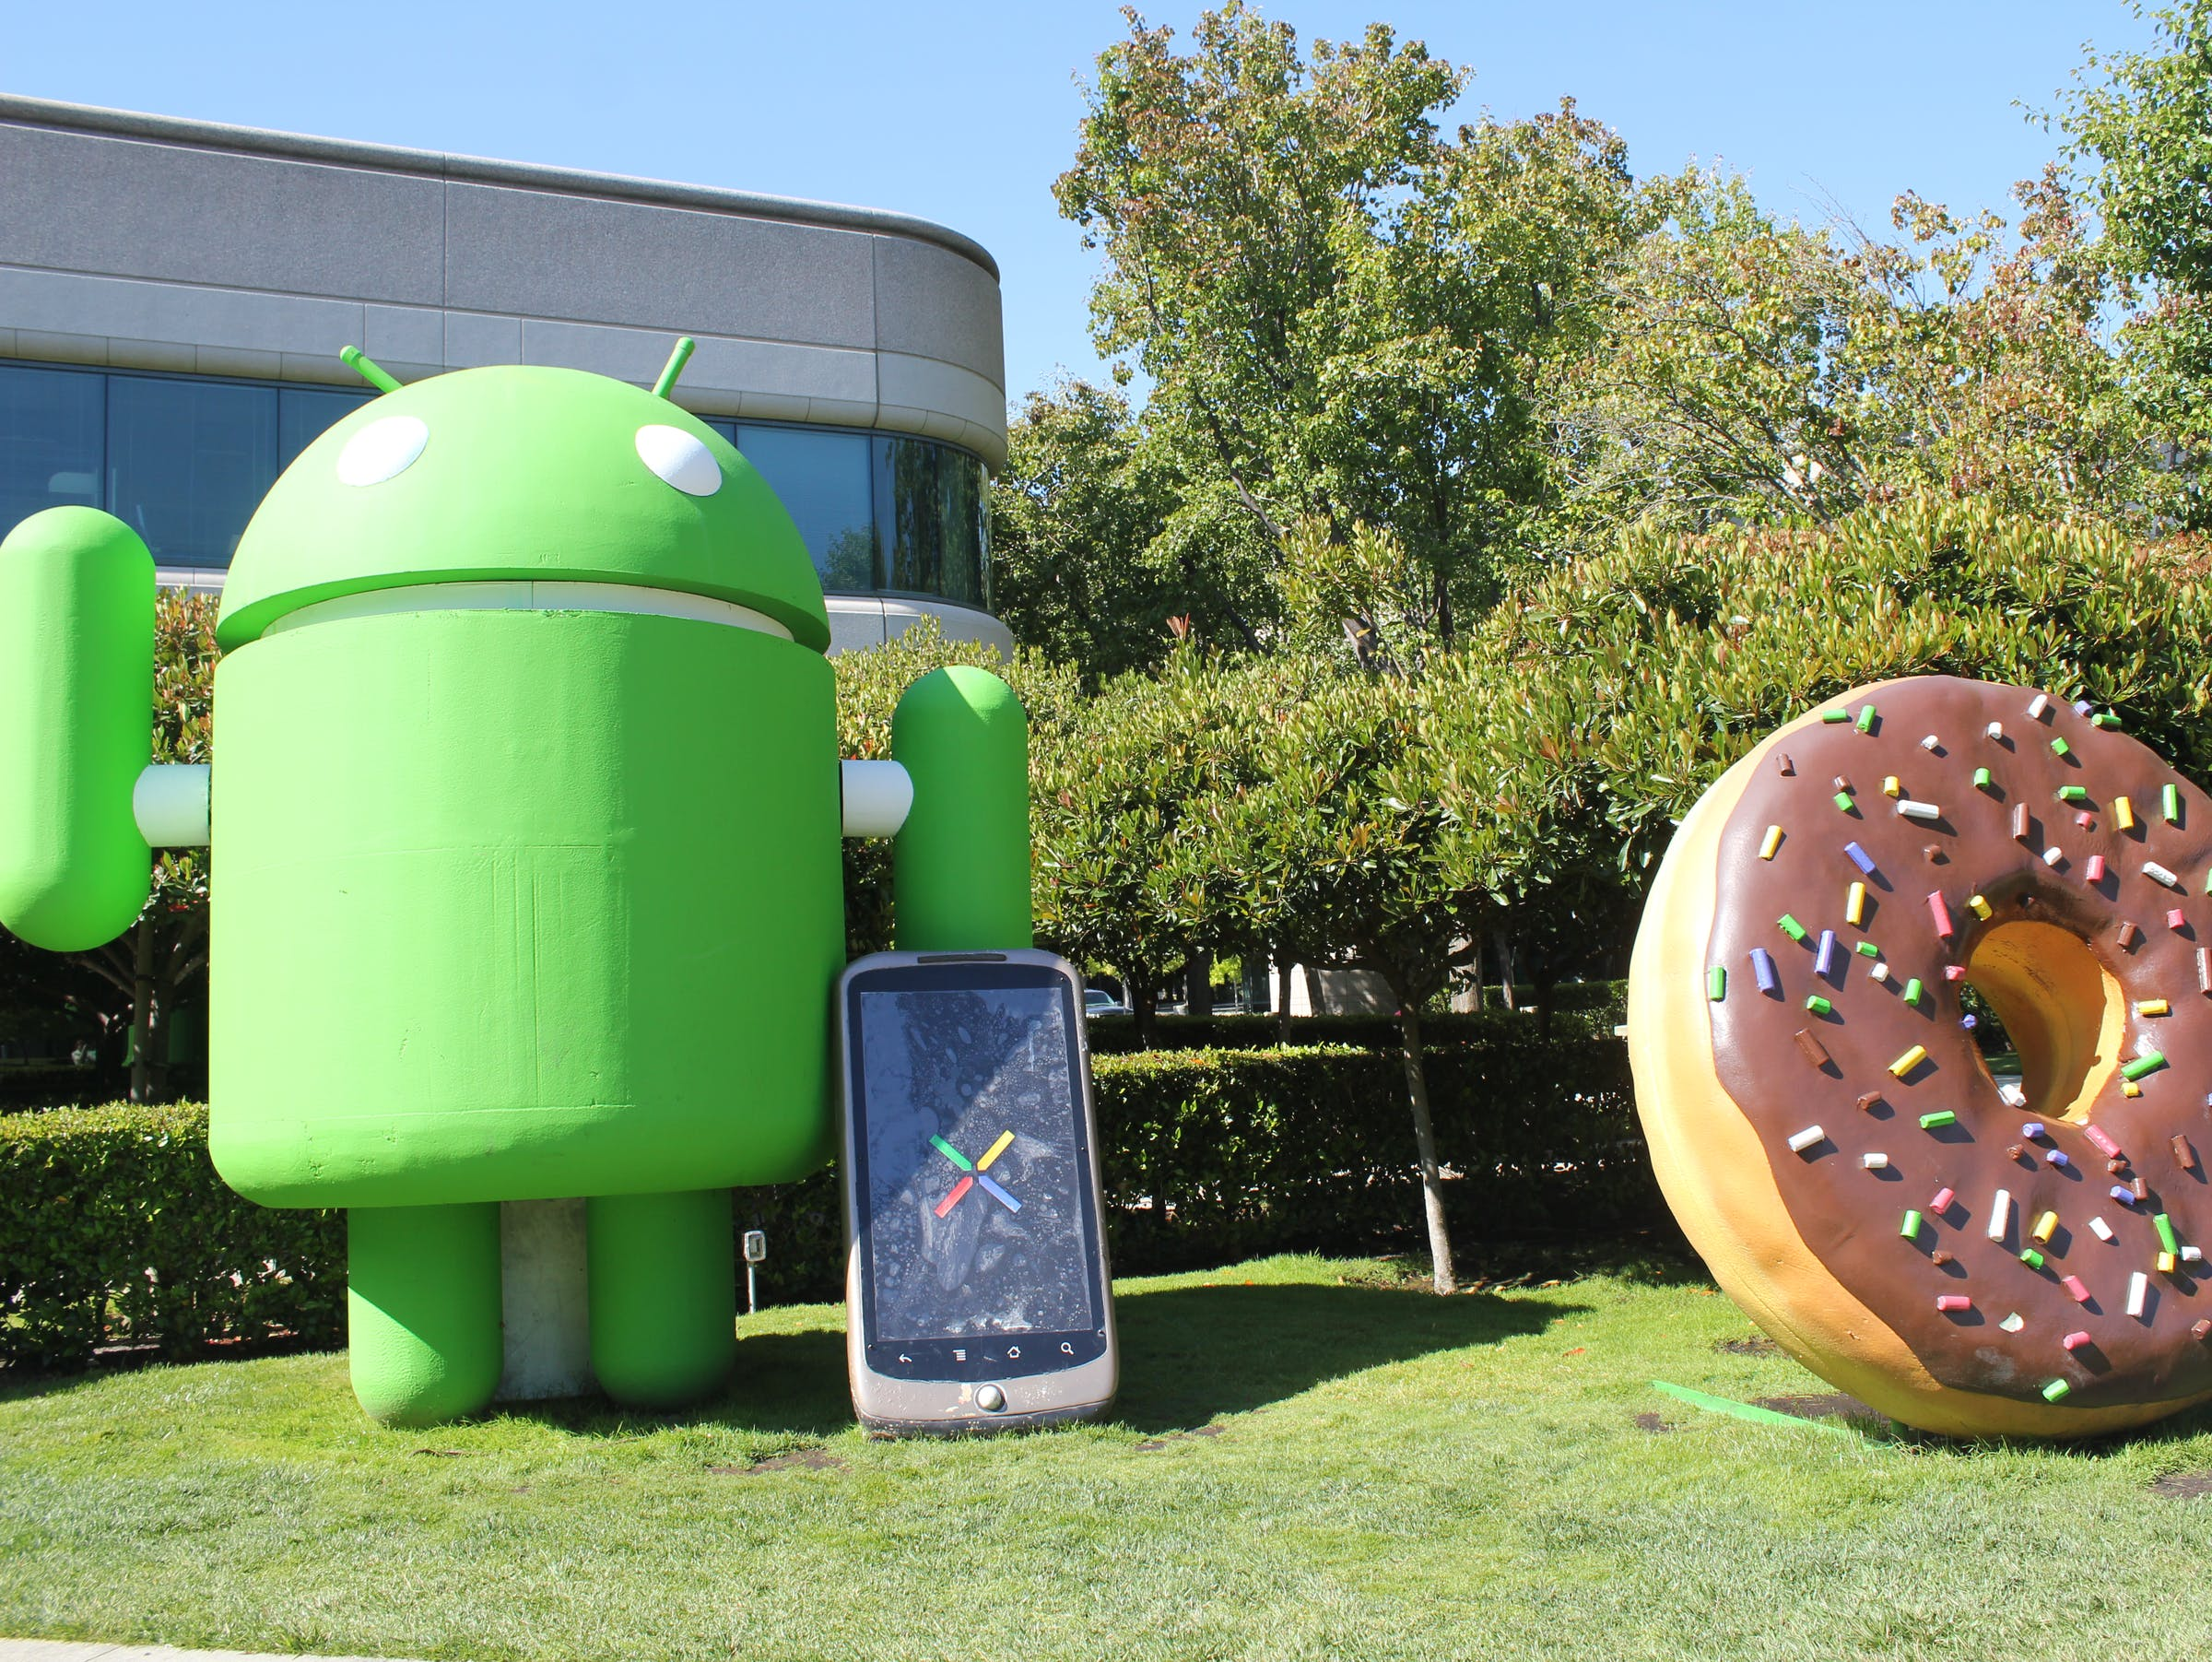 Android and donut